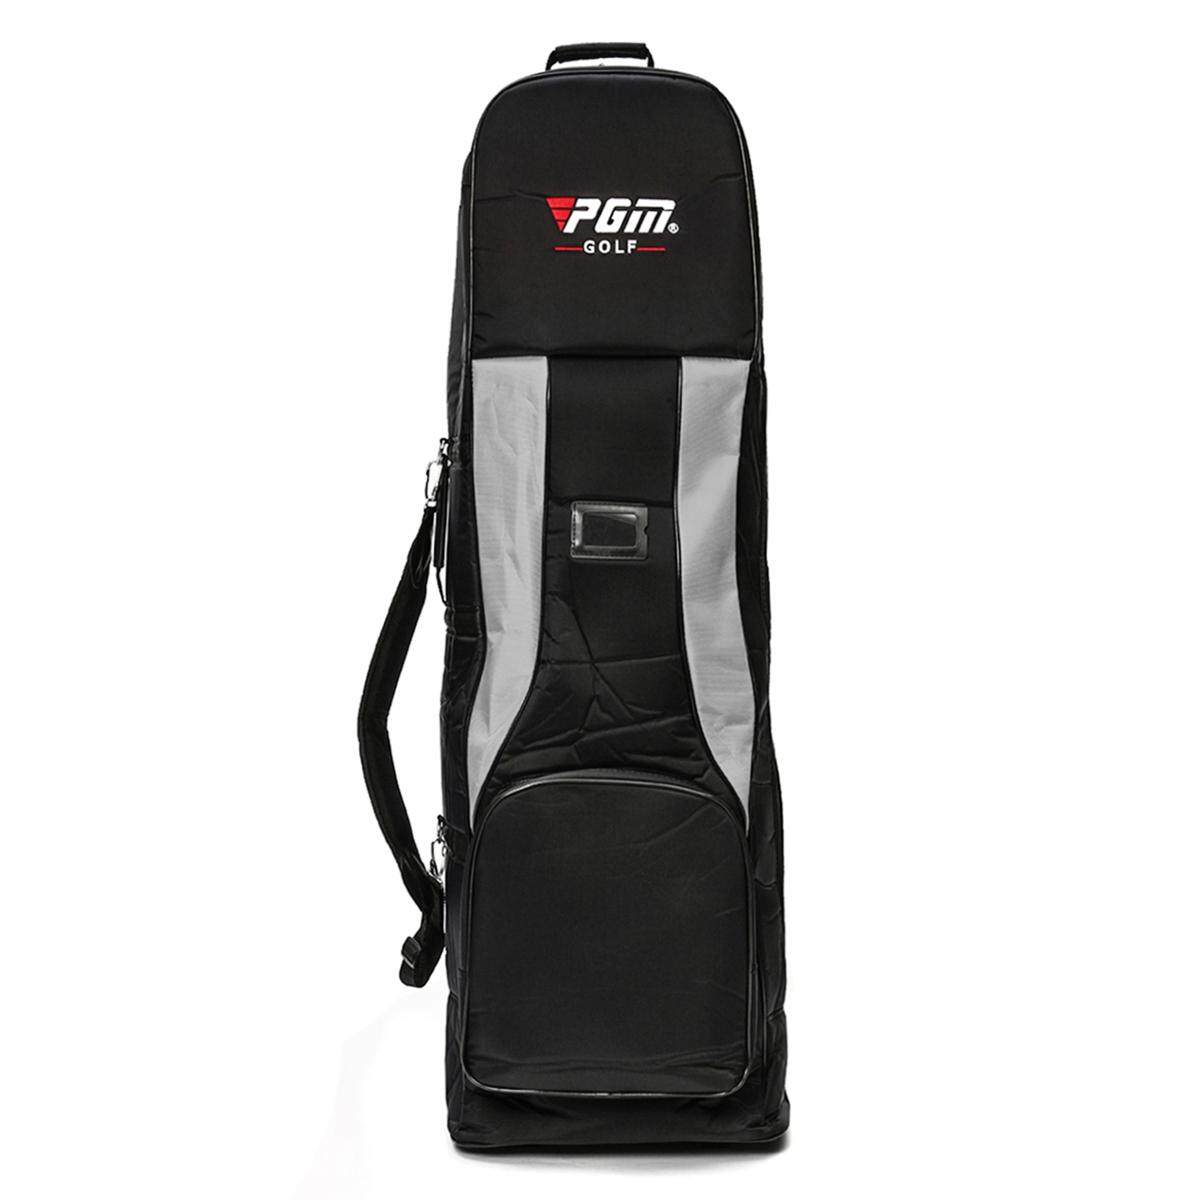 Brand New Golf Bag Premium Travel Cover On Wheels Padded Top Fits Most Bags By Freebang.